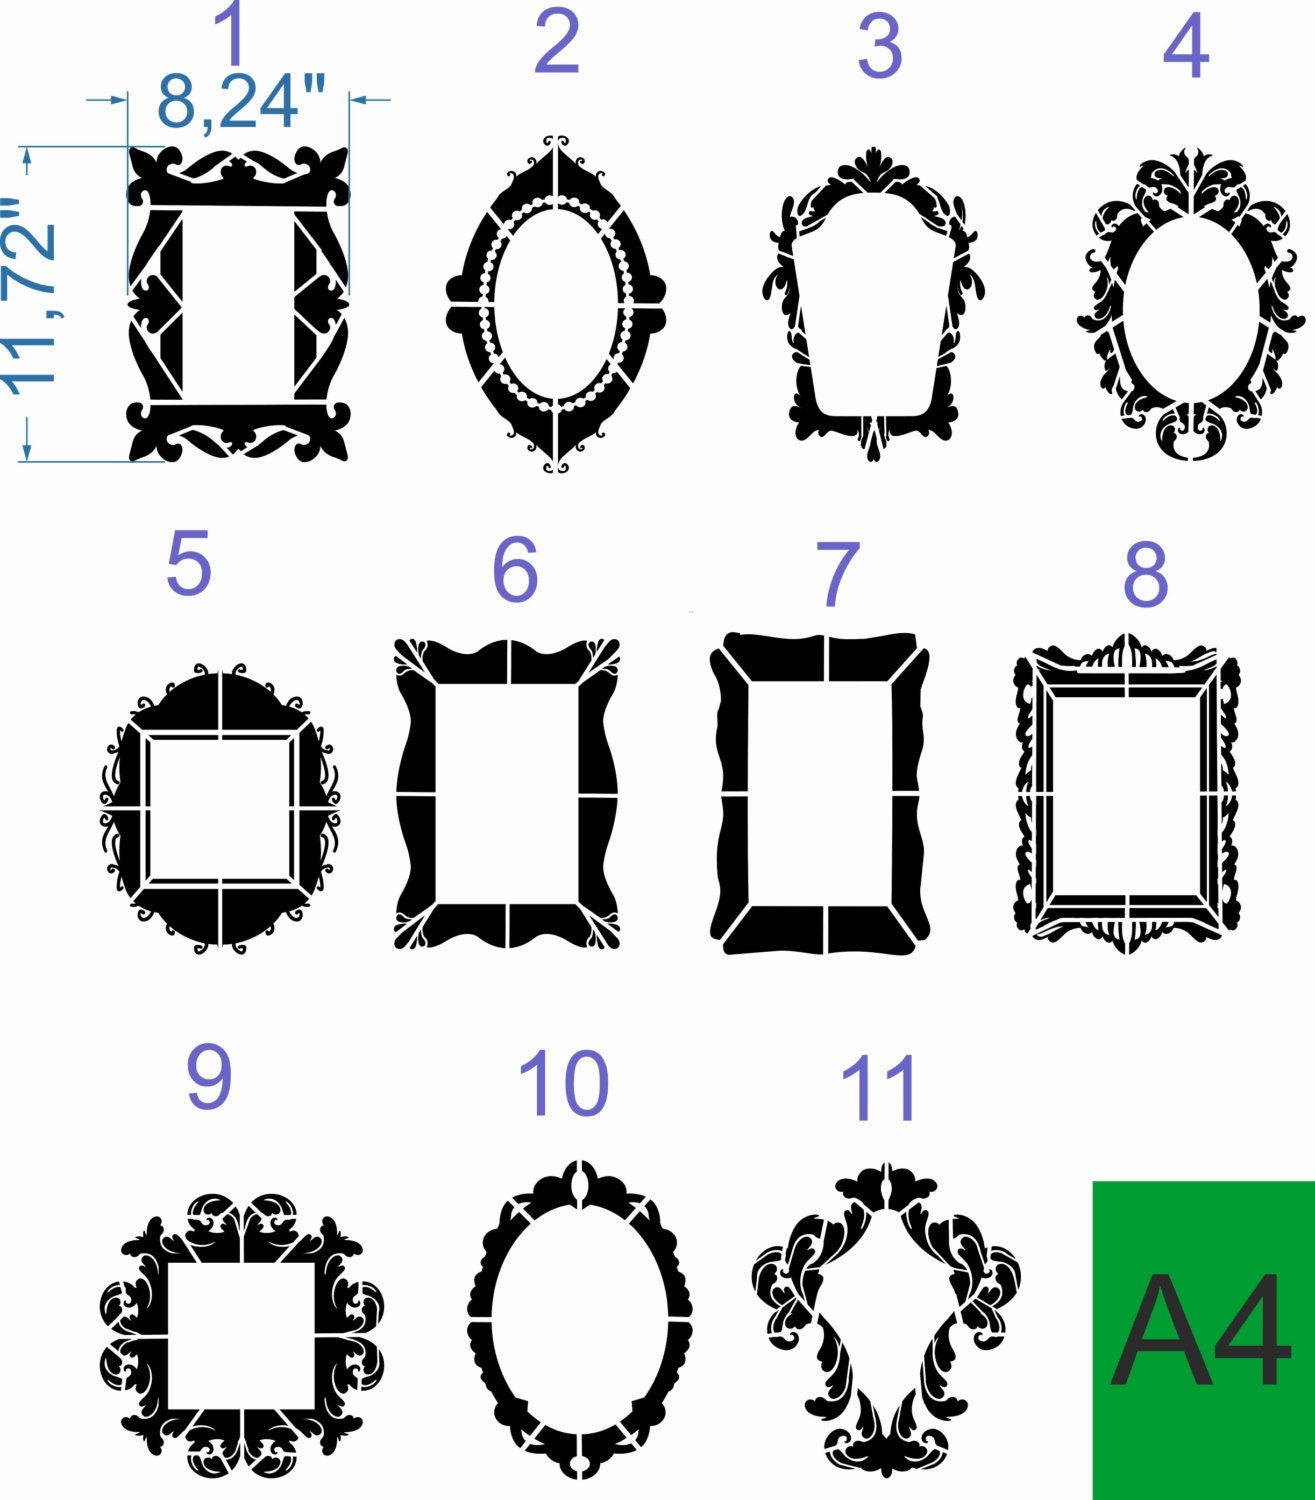 Custom stencils a4 plastic stencil frame ornate oval chic wall zoom jeuxipadfo Image collections